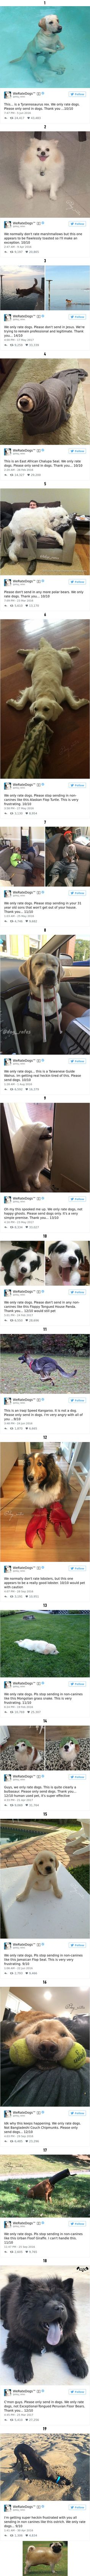 19 Times people failed to send dog pics to We Rate Dogs http://ift.tt/2skhlKd